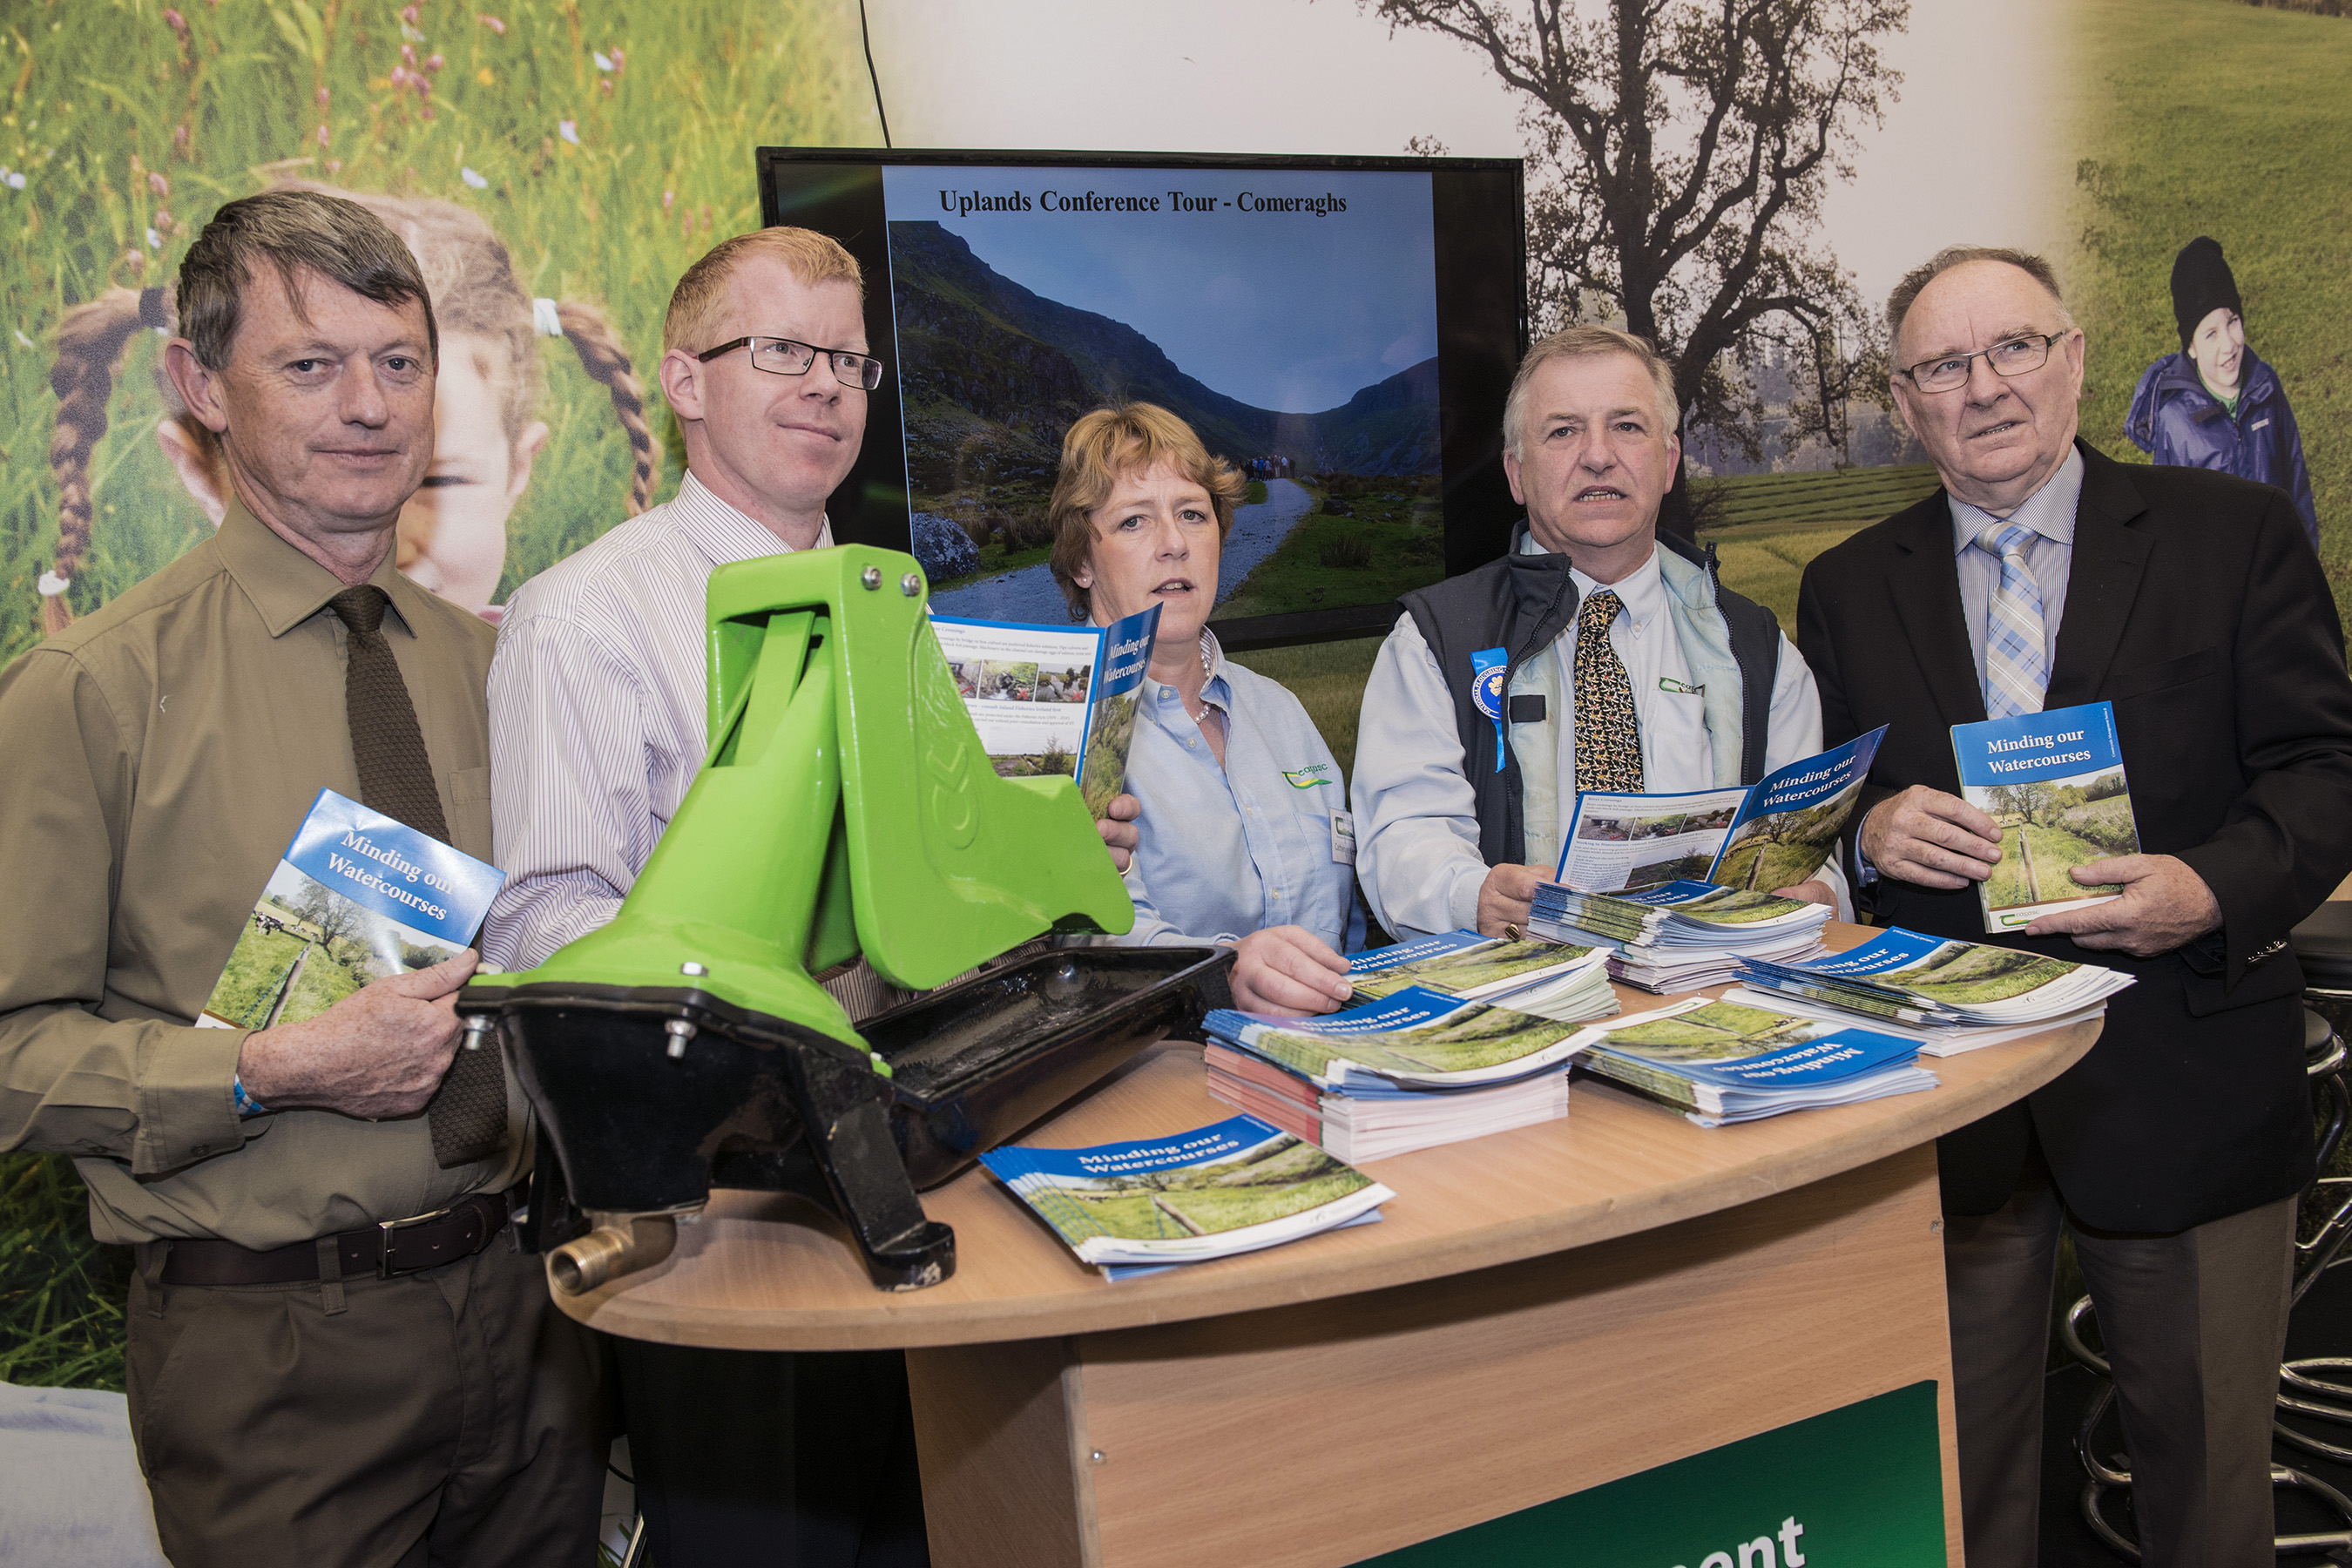 Pictured at the launch of the Teagasc/ Inland Fisheries Ireland booklet on 'Minding Our Watercourses' on the Teagasc stand at the National Ploughing Championships in Ratheniska, Co Laois are Greg Forde, Inland Fisheries Ireland, Dr Ciaran Byrne, CEO Inland Fisheries Ireland, Catherine Keena, Countryside Management Specialist, Teagasc, Prof. Gerry Boyle, Director Teagasc & Brendan O'Mahony, Chairman, Inland Fisheries Ireland.